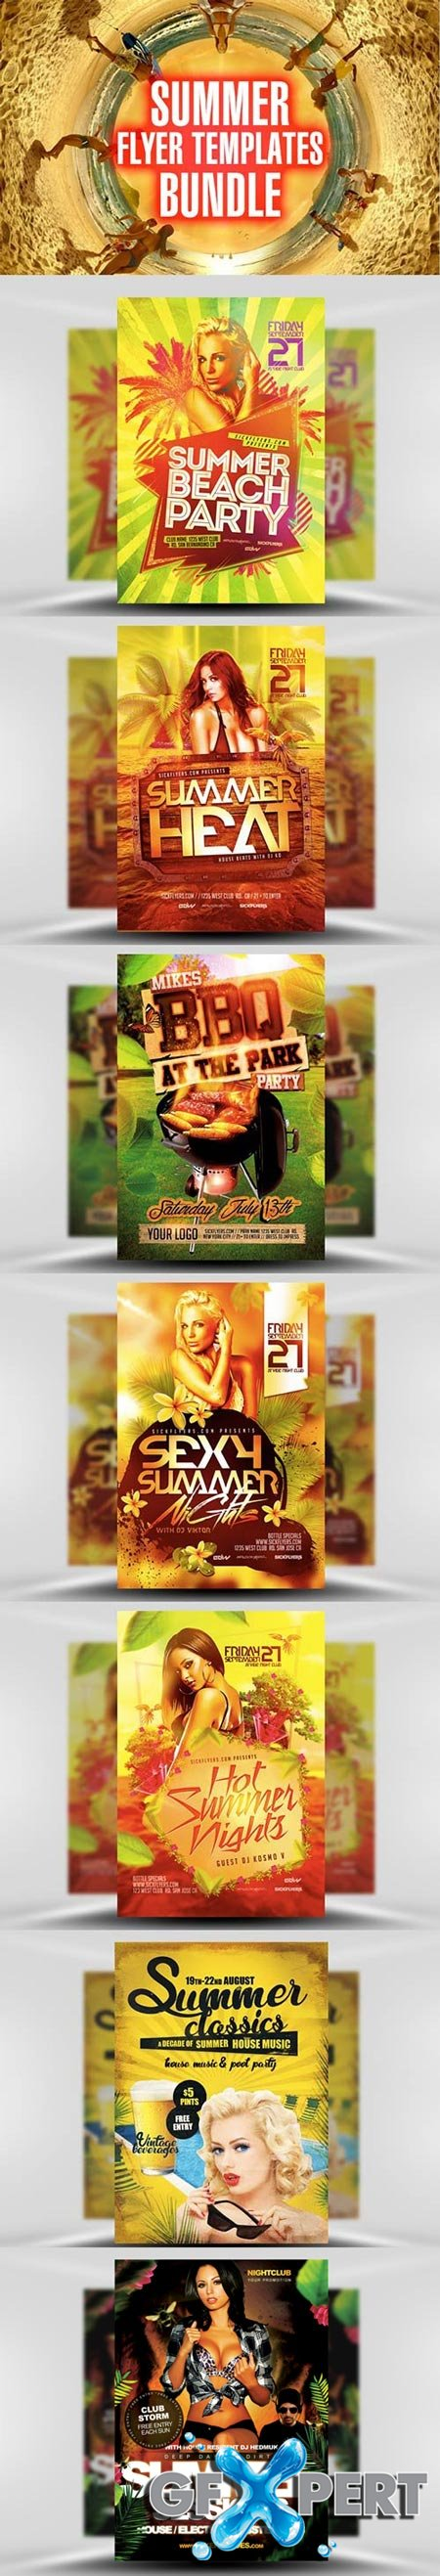 FlyerHeroes Summer Flyer Templates Bundle